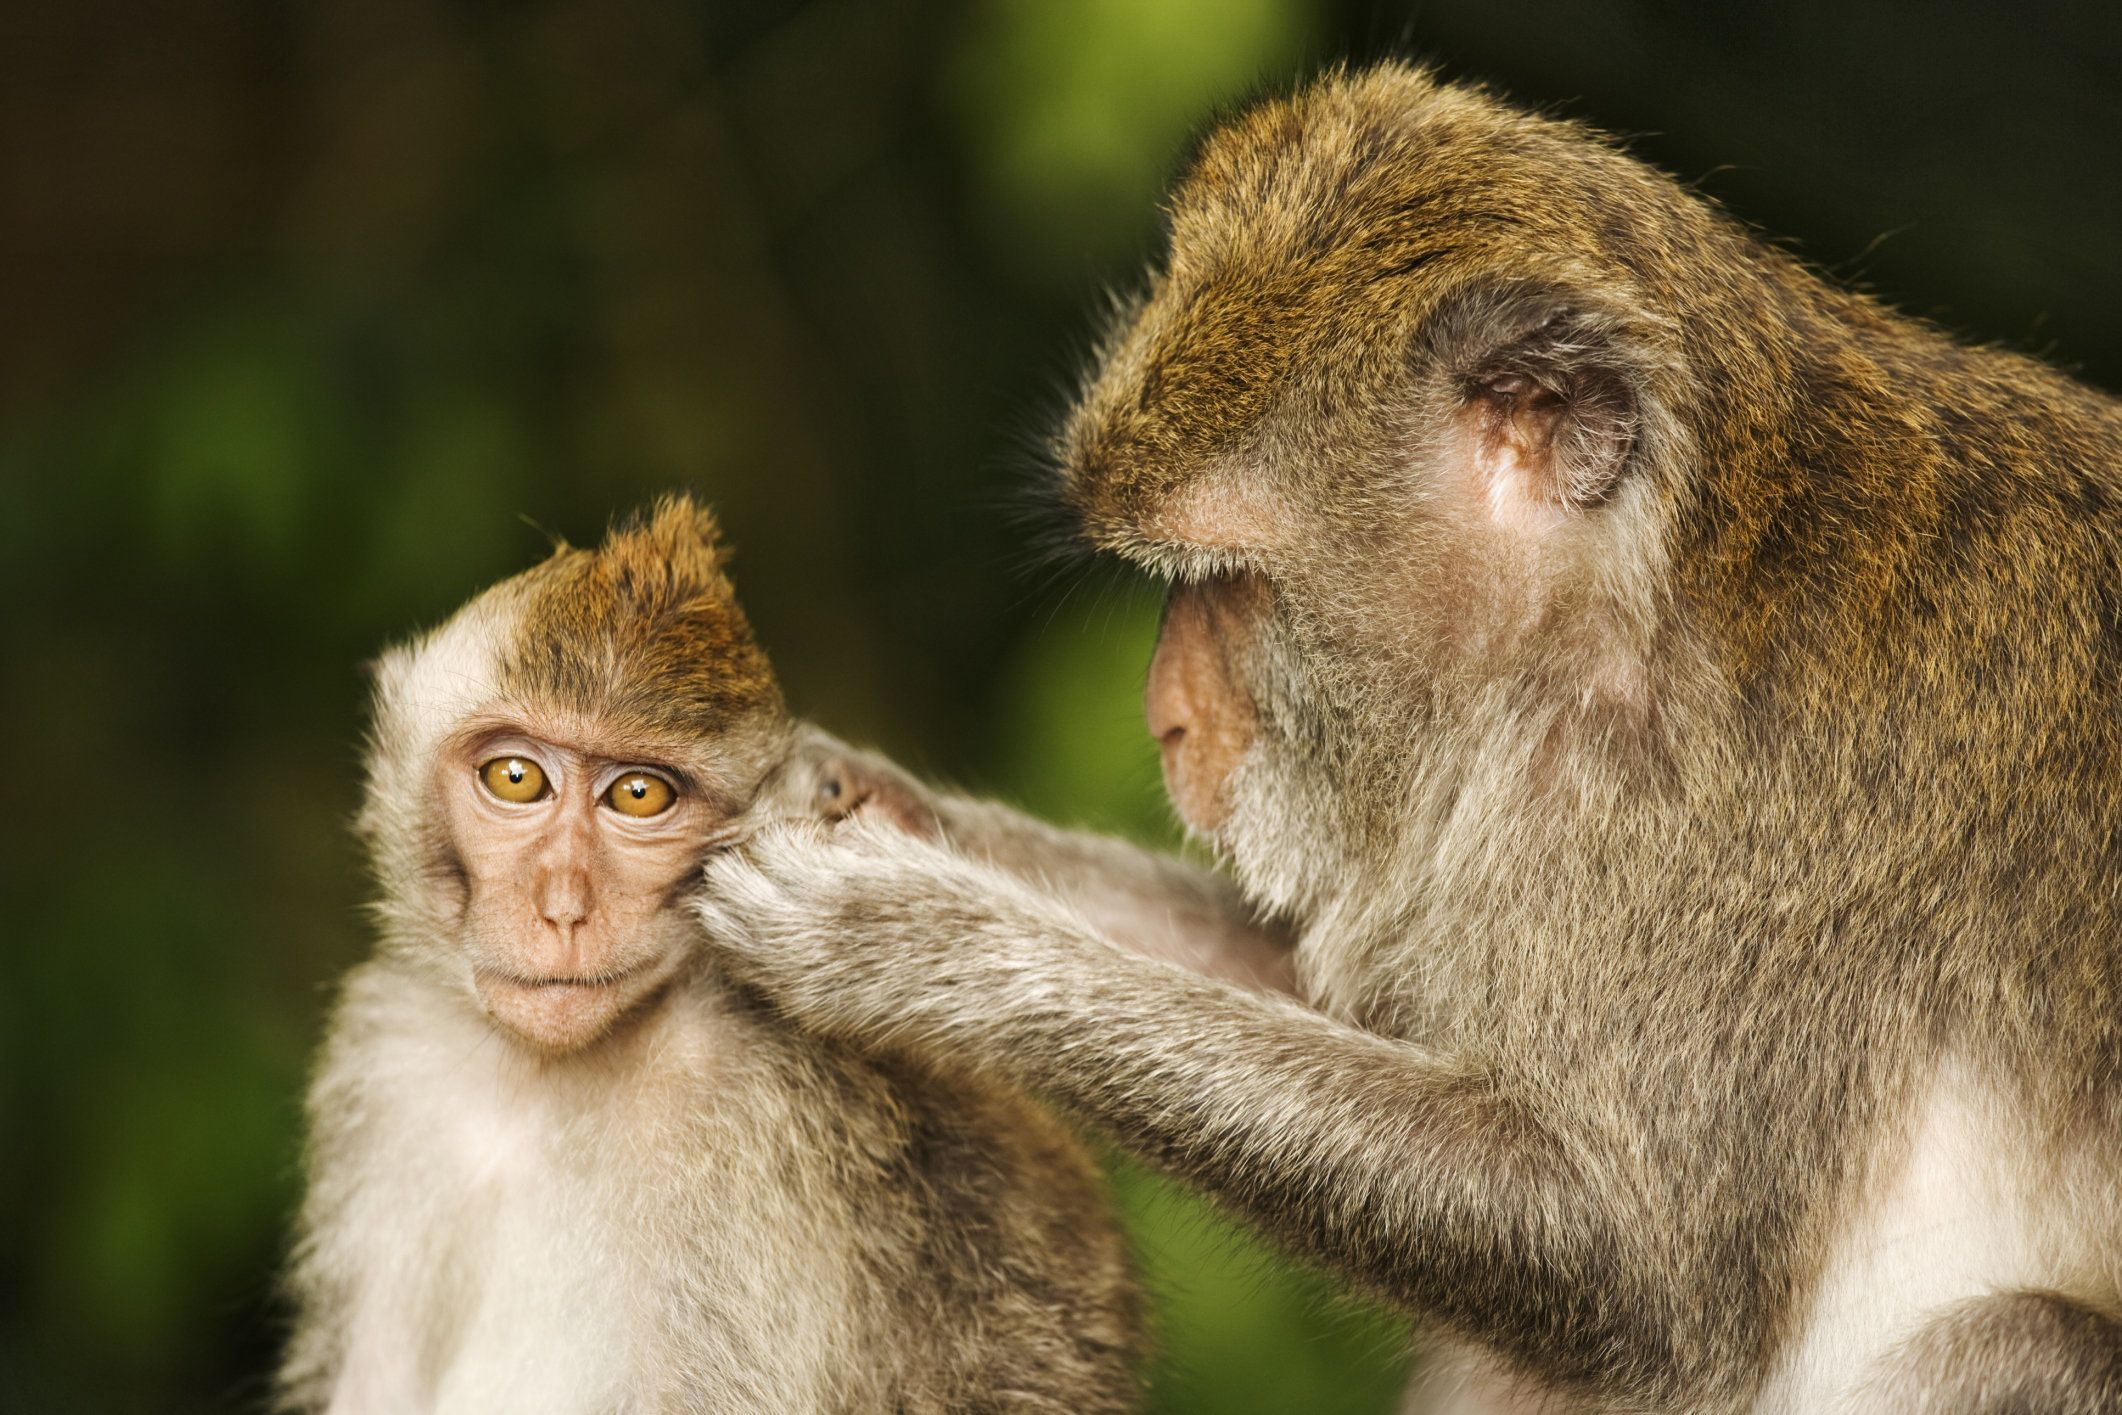 """Primates have also been used in recent years to study <a href=""""http://animalresearch.thehastingscenter.org/report/using-monke"""